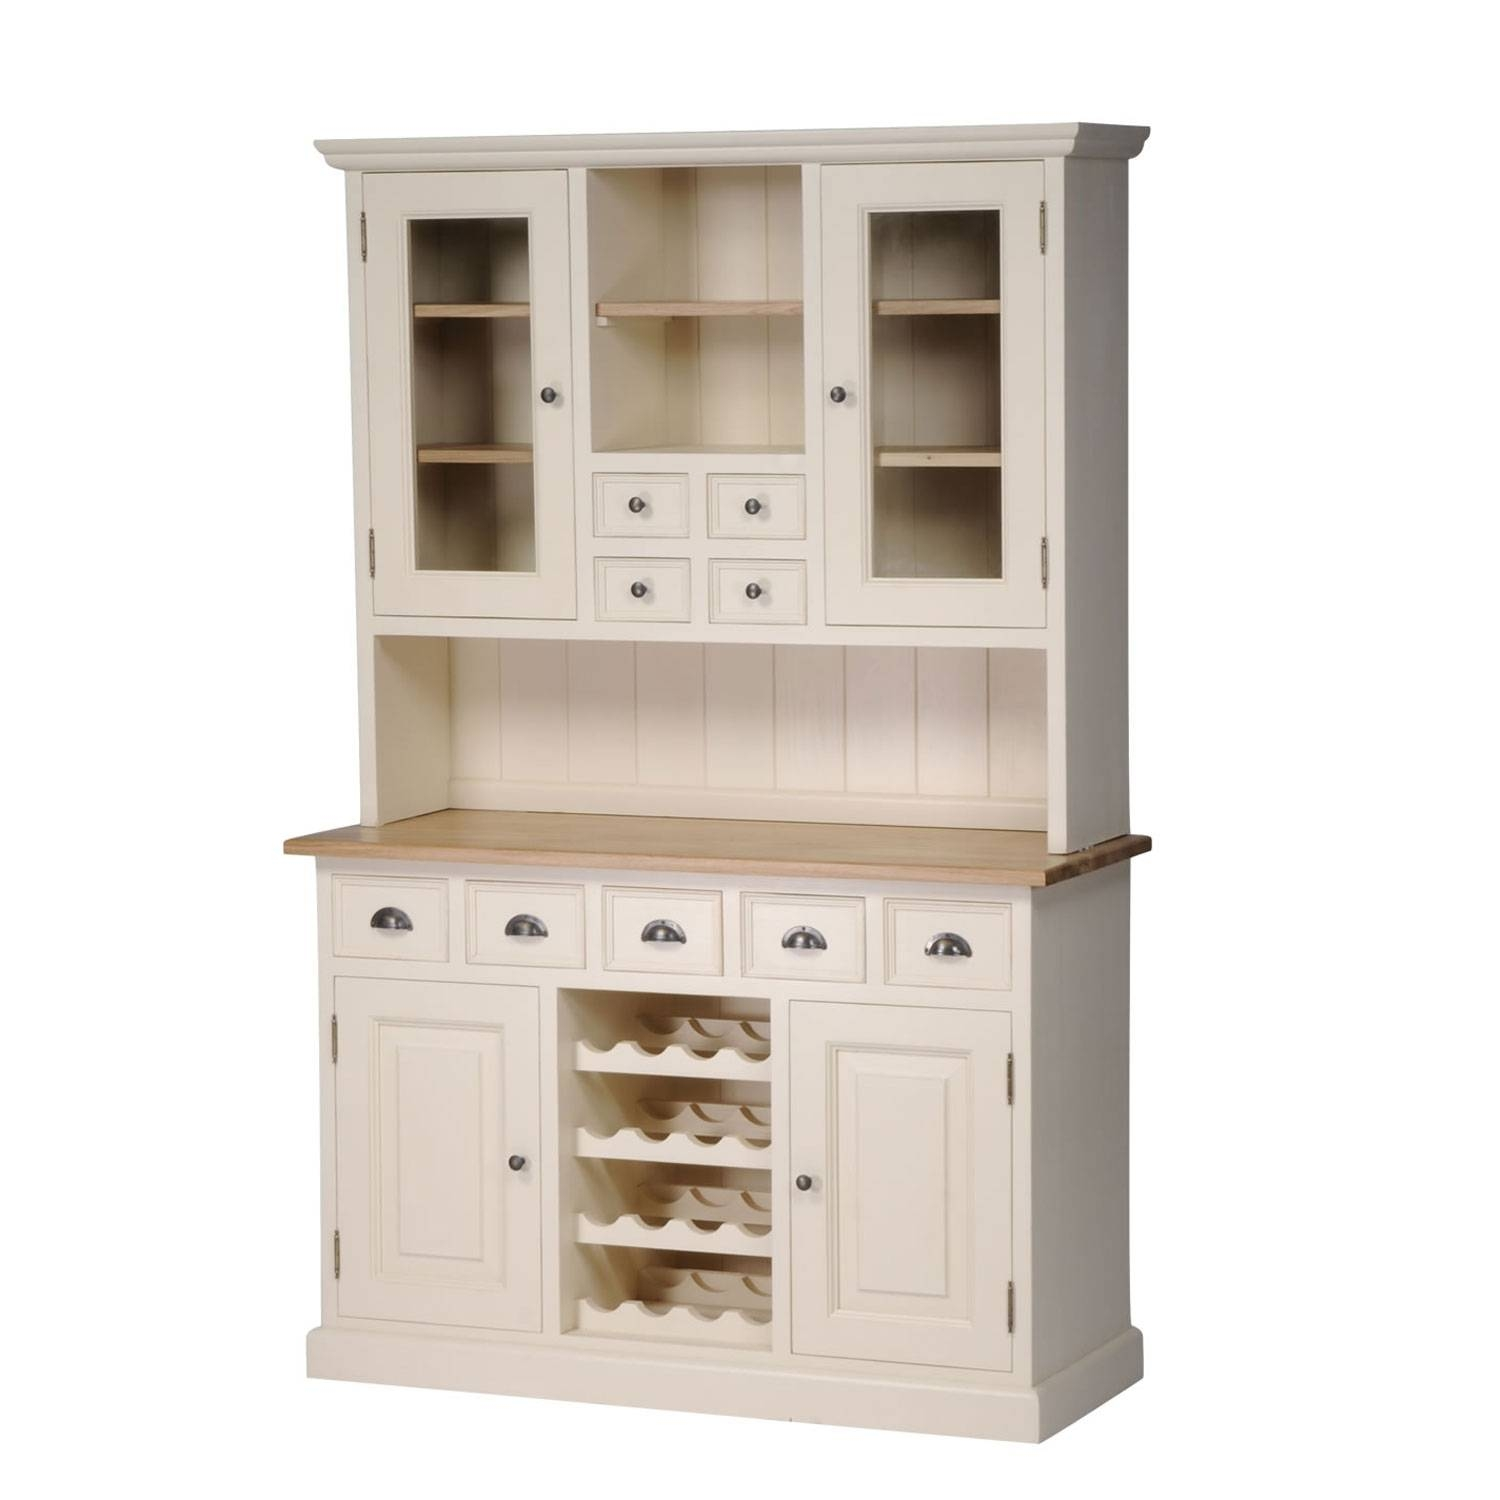 Painted Dressers And Sideboards ~ Bestdressers 2017 in White Sideboards With Wine Rack (Image 11 of 30)